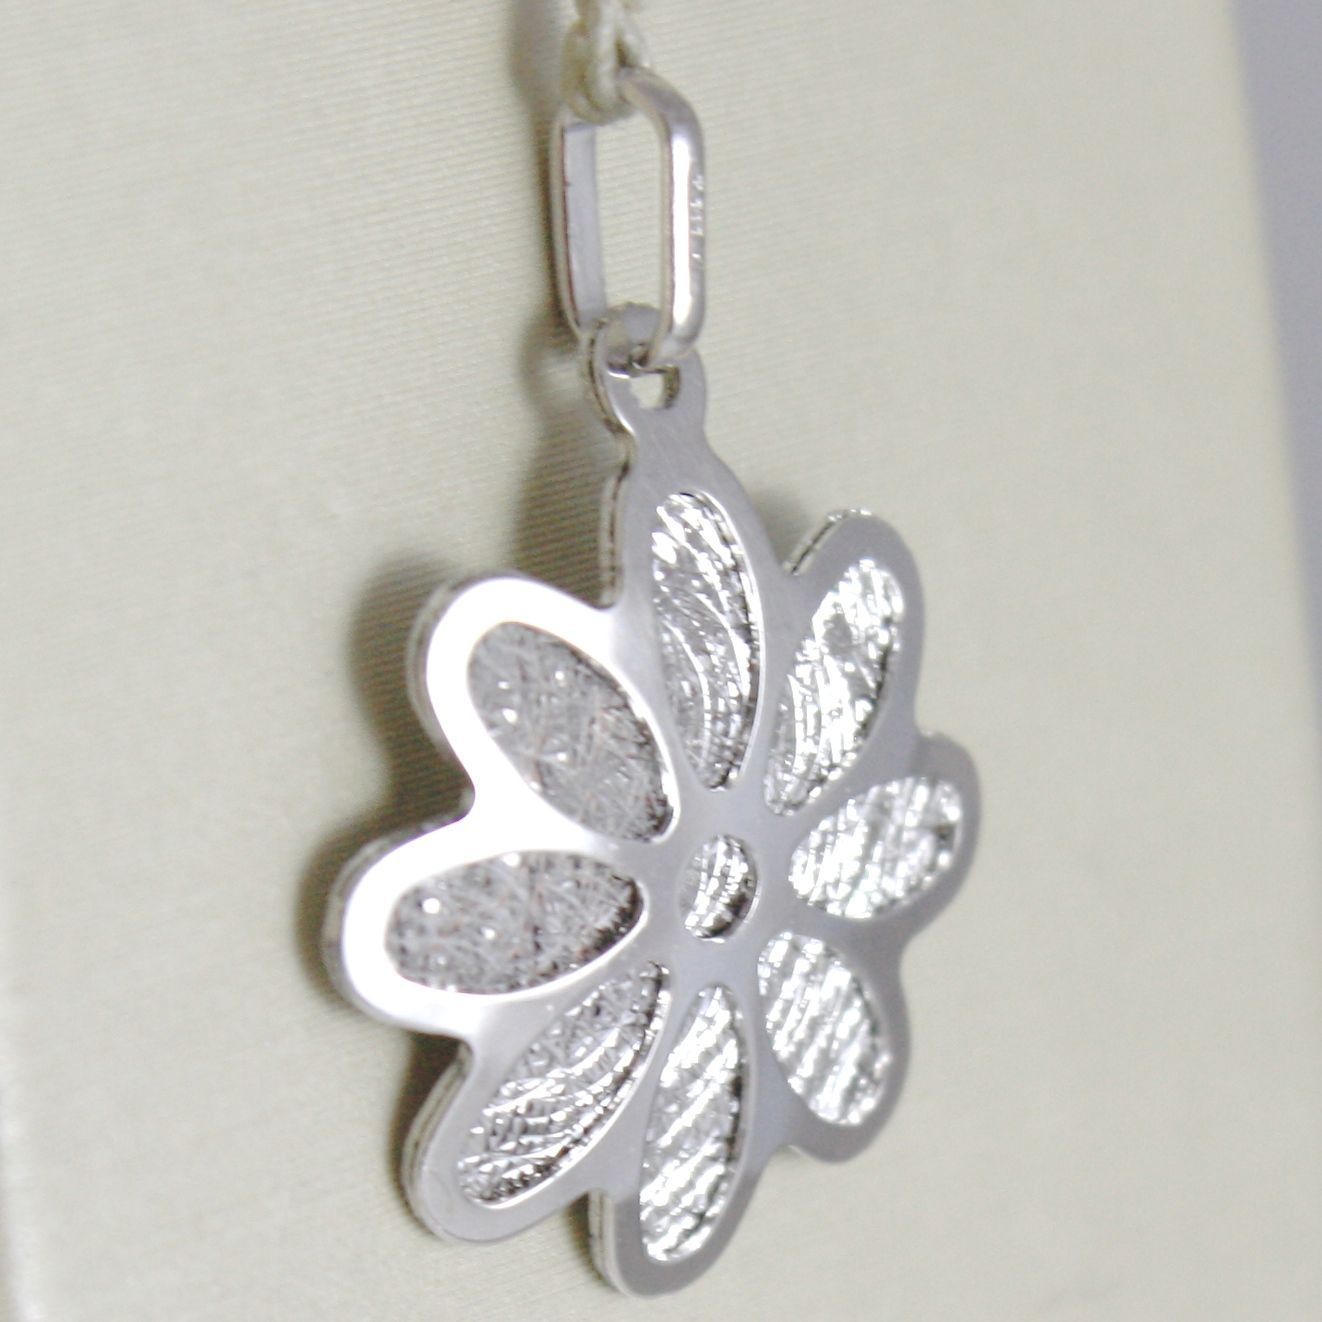 WHITE GOLD PENDANT 750 18K DAISY FLOWER PENDANT MILLED LONG 2.2 CM